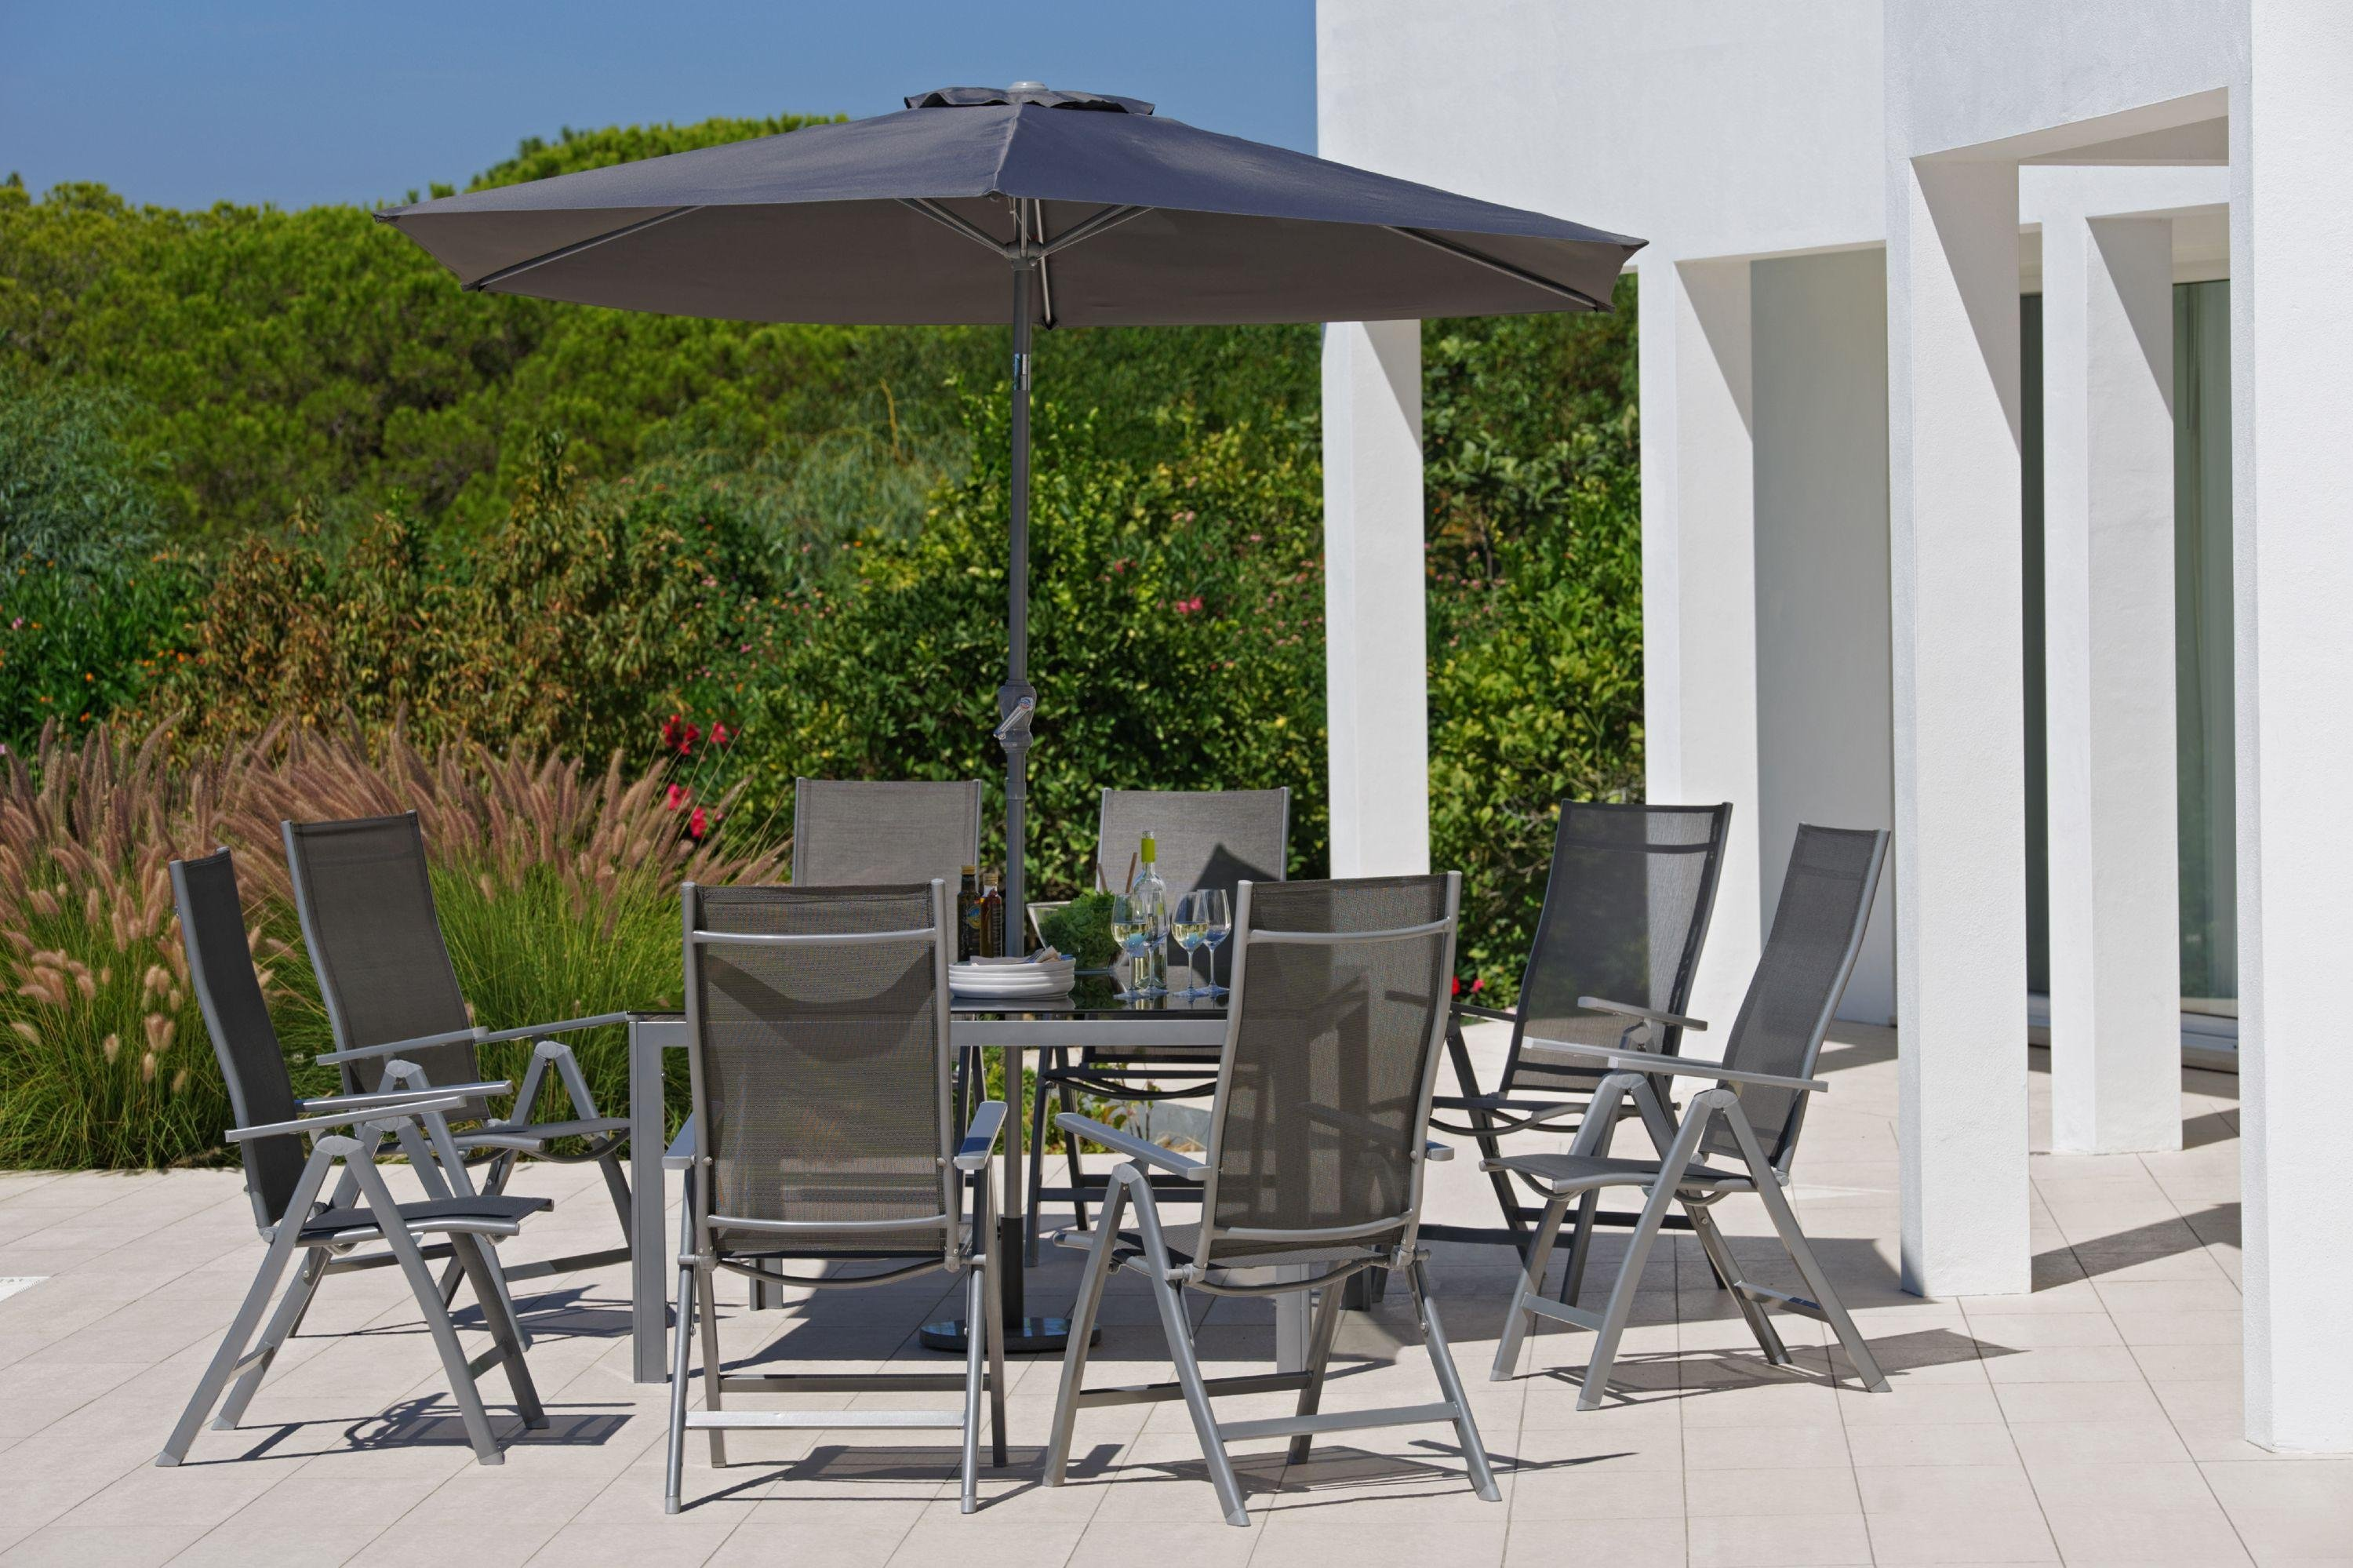 Garden Furniture 8 Seater Patio Set buy collection malibu 8 seater steel patio set at argos.co.uk